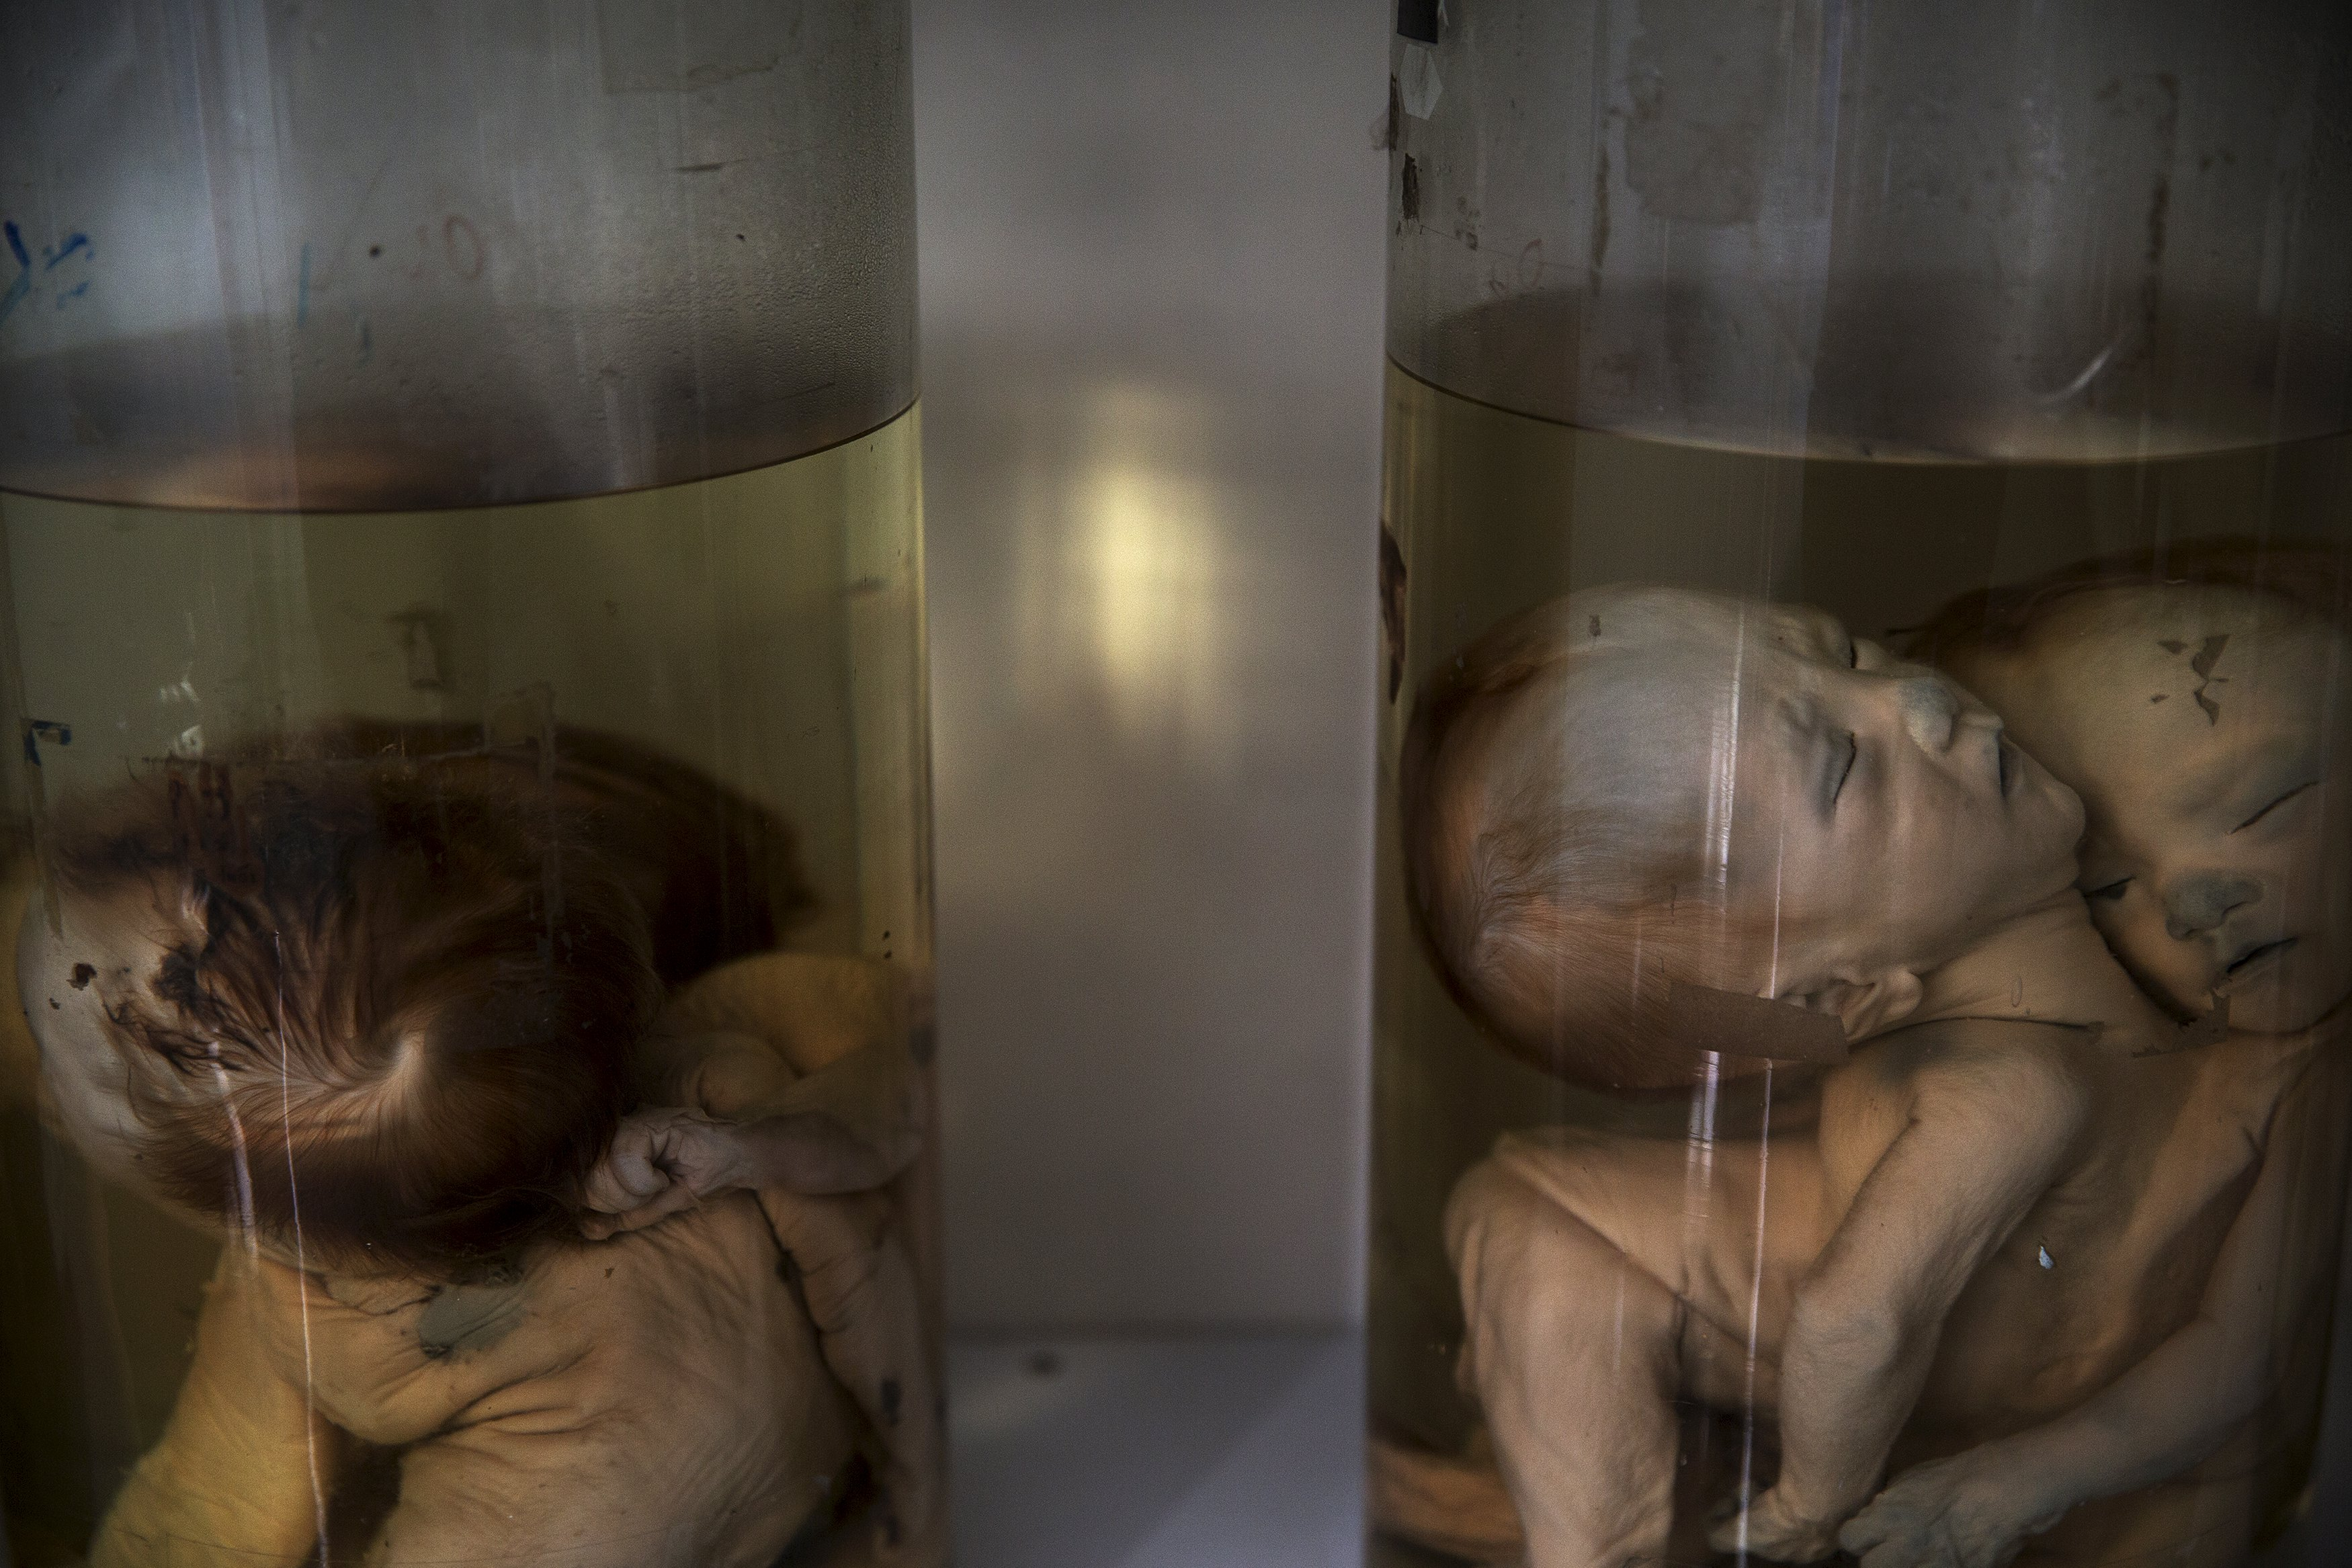 Deformed foetuses are seen inside glass containers in an exhibition room at Peace Village in Tu Du hospital in Ho Chi Minh City April 14, 2015. Doctors at the hospital attribute the high incidence of deformities to the use of Agent Orange during the Vietnam War. According to the head of the Peace Village, more than two-thirds of its over 60 patients are from areas that were heavily sprayed by Agent Orange and their health conditions are linked to the use of the defoliant.